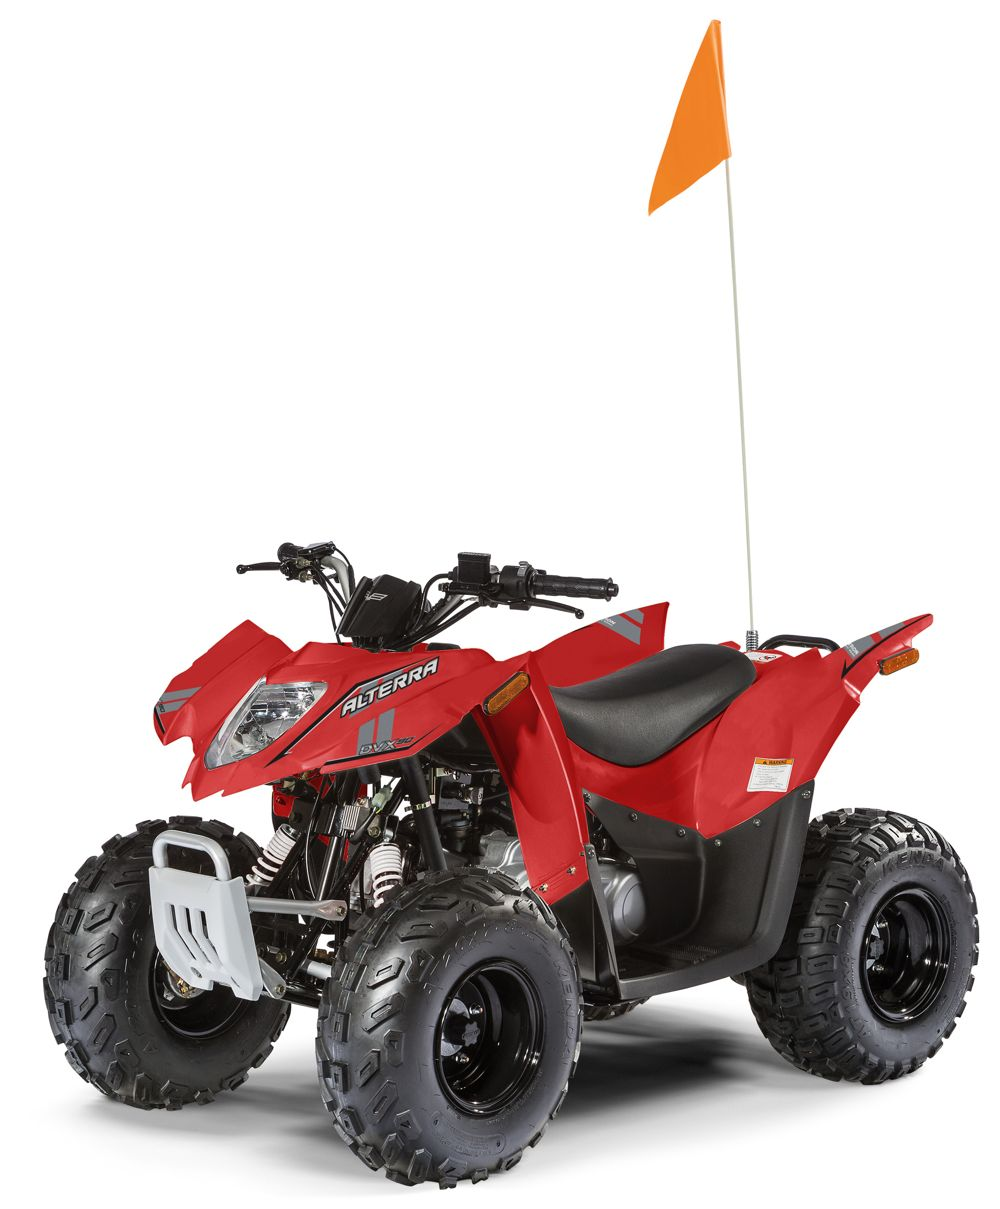 2018 Alterra DVX 90 from Textron Off Road